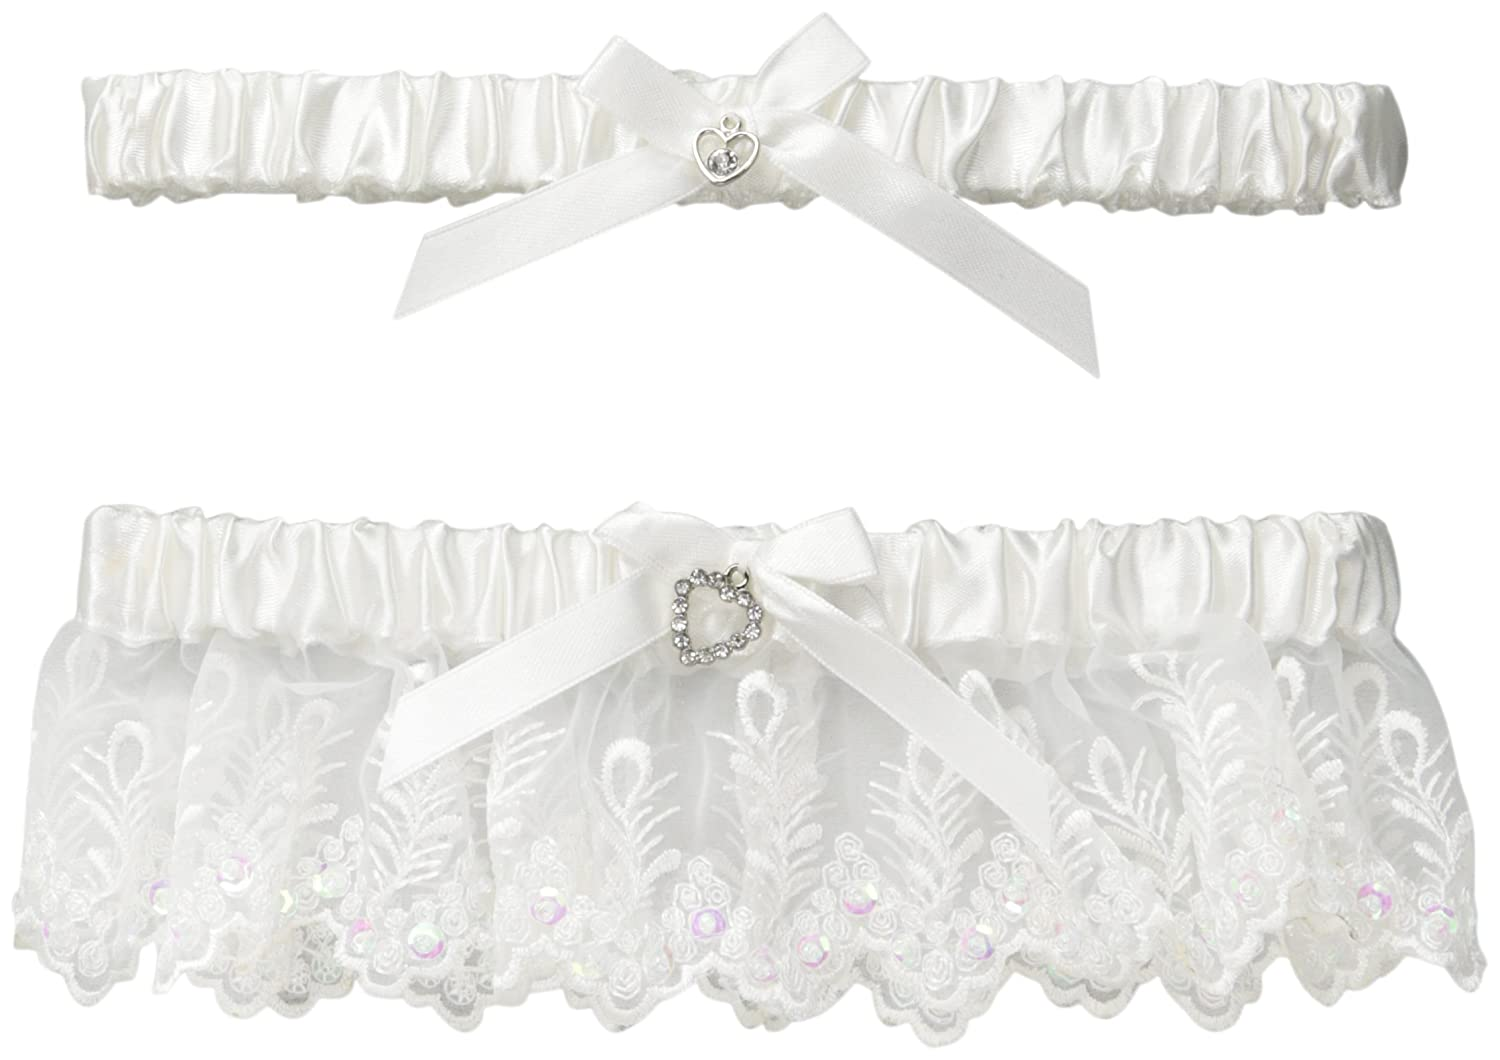 iCollection Women's 2 Piece Toss Garter Set White One Size iCollection Exotic IA 7401